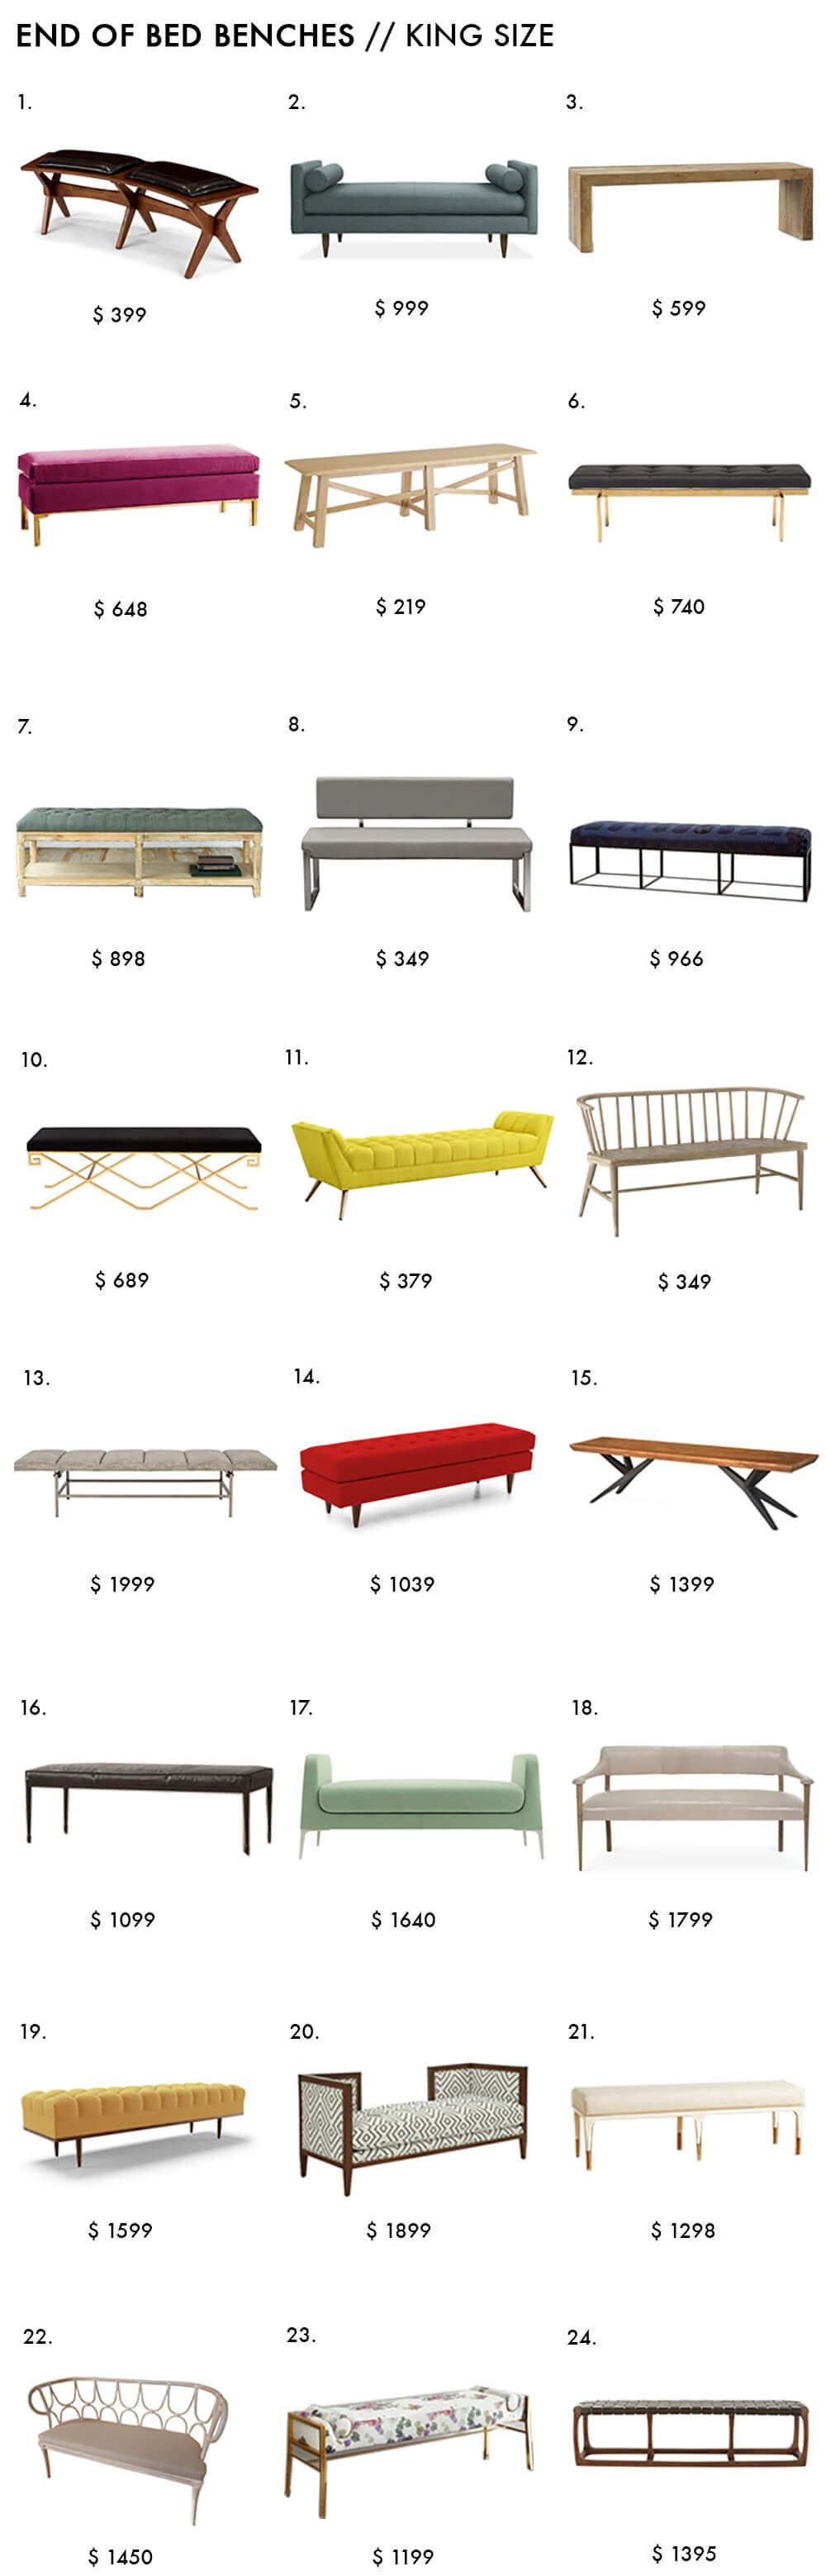 end of bed benches emily henderson bed bench bench and king size